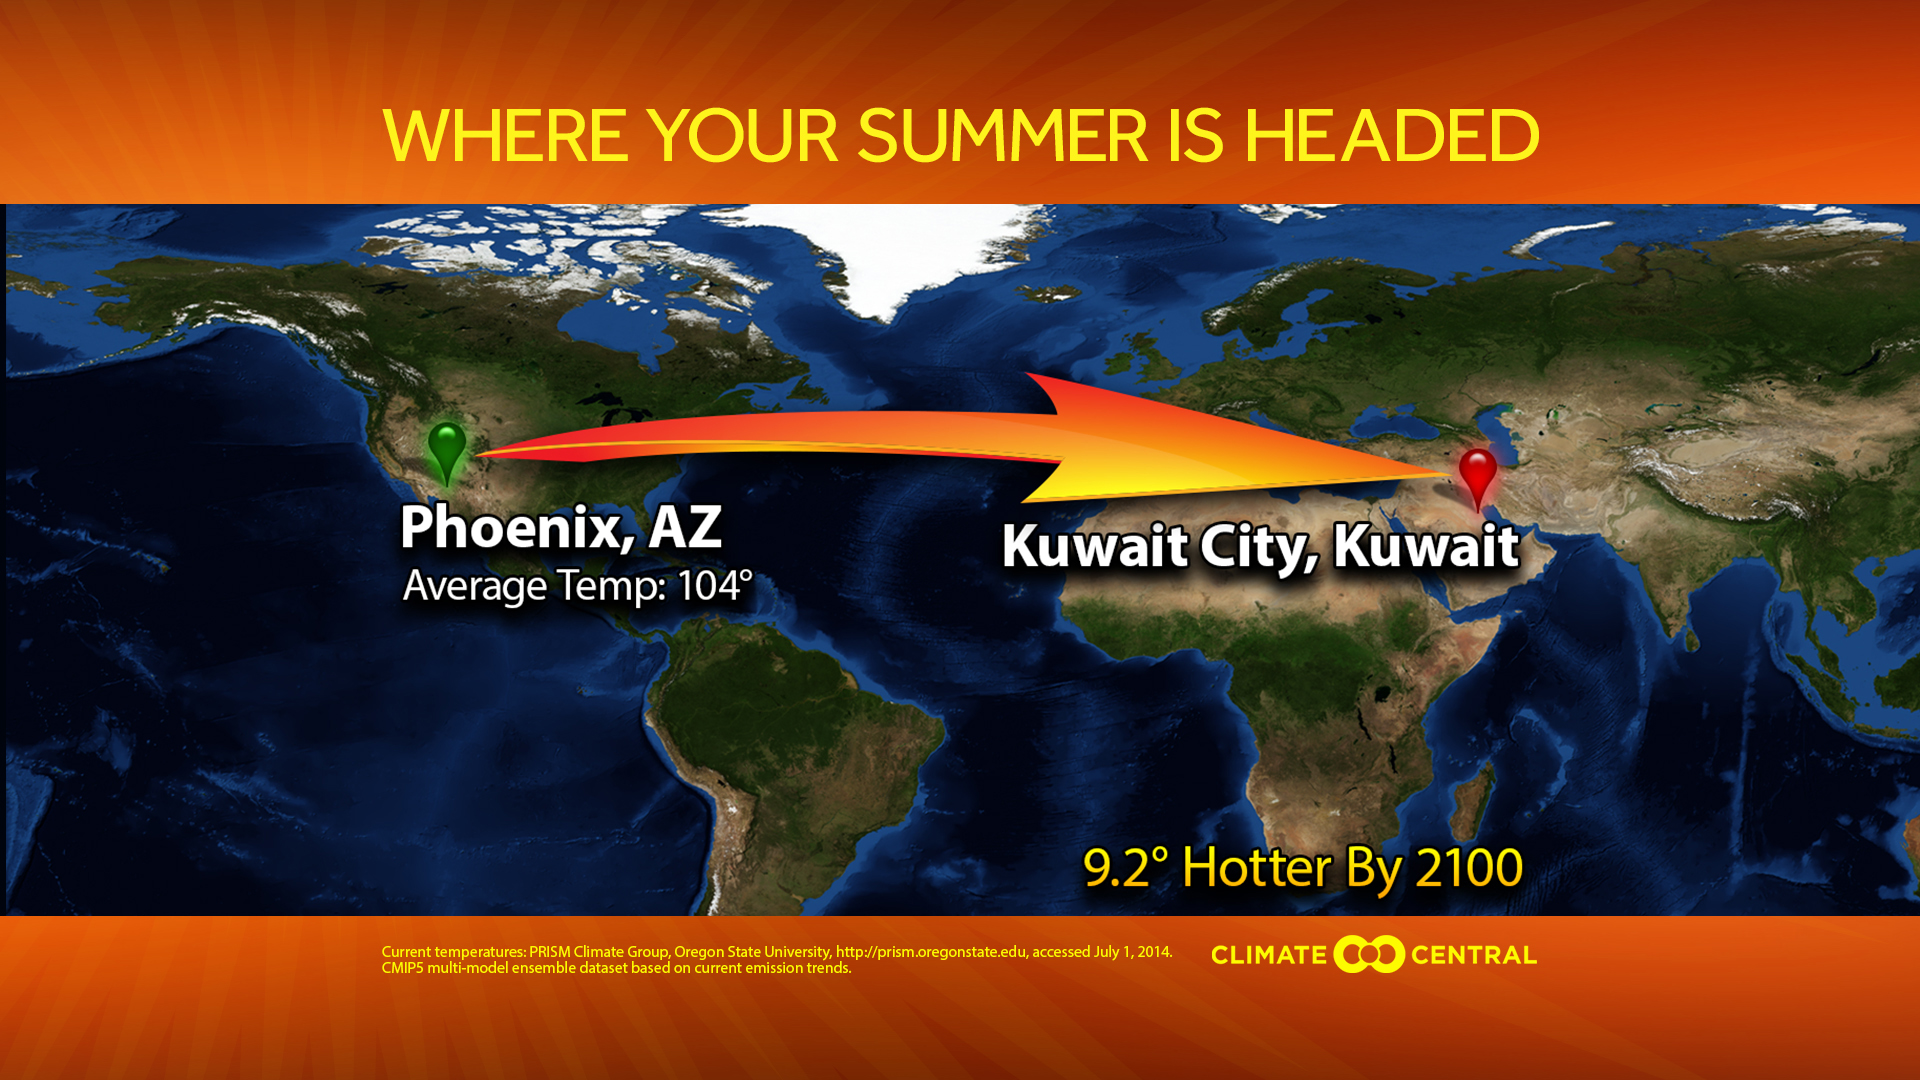 Where is your summer headed